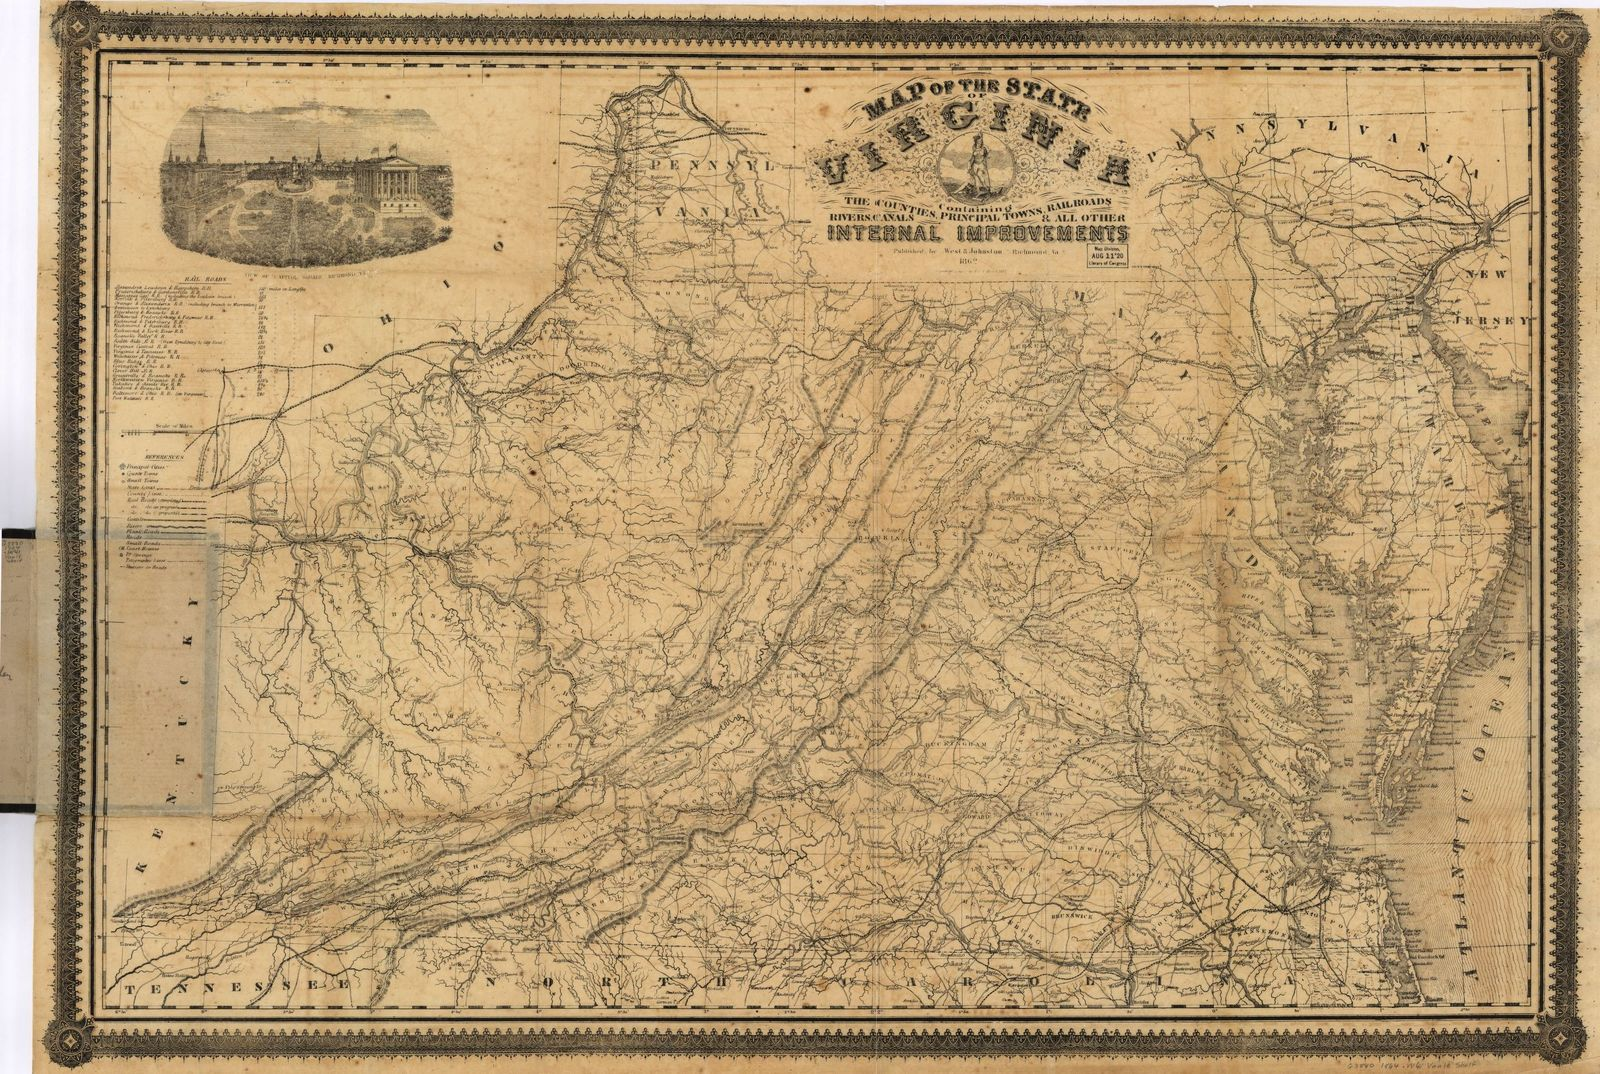 Map of the state of Virginia containing the counties, principal towns, railroads, rivers, canals & all other internal improvements.